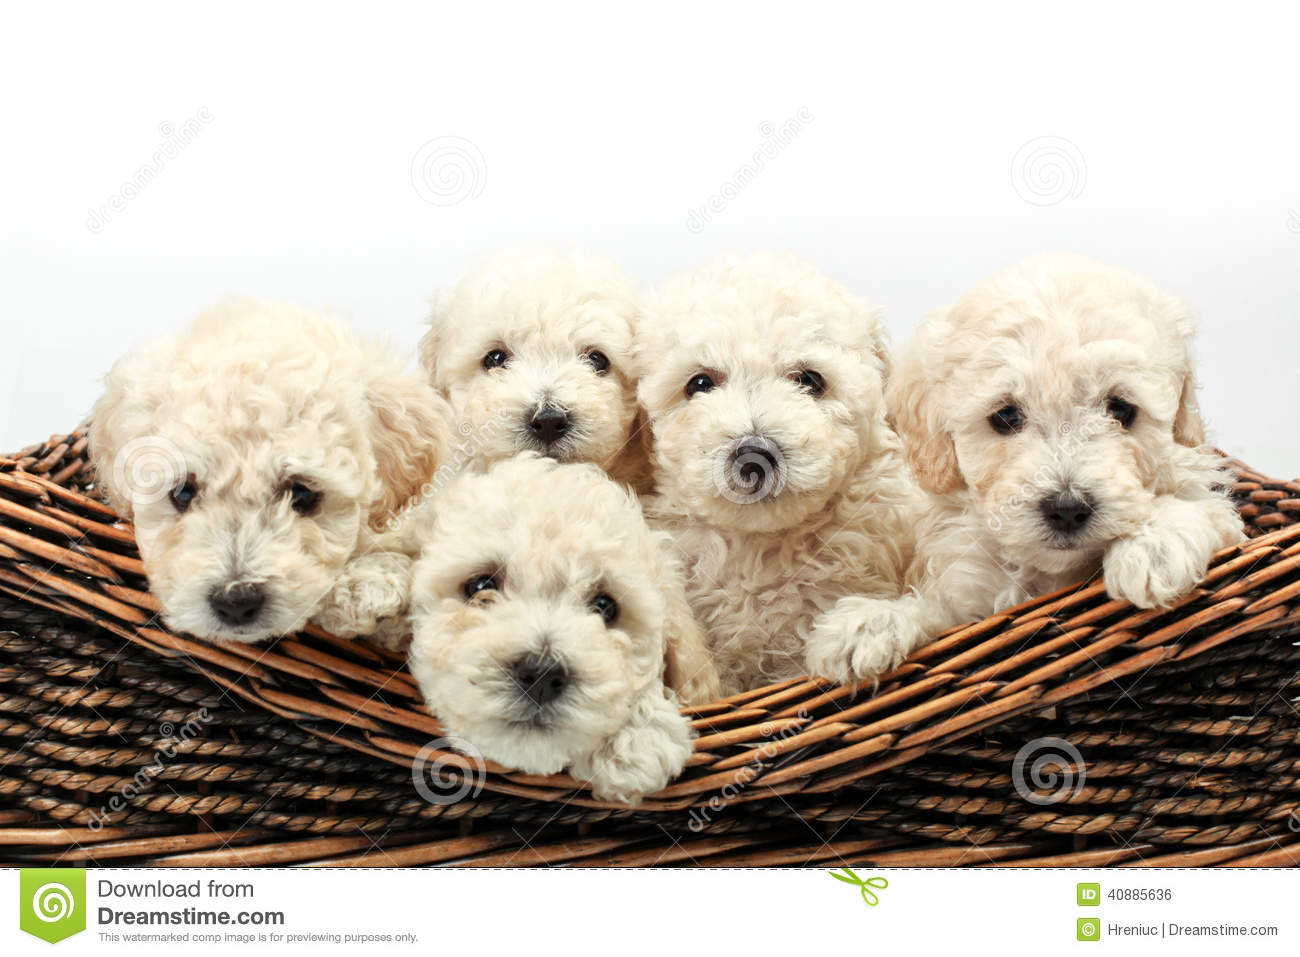 petits chiens mignons dans un panier en bois photo stock image 40885636. Black Bedroom Furniture Sets. Home Design Ideas